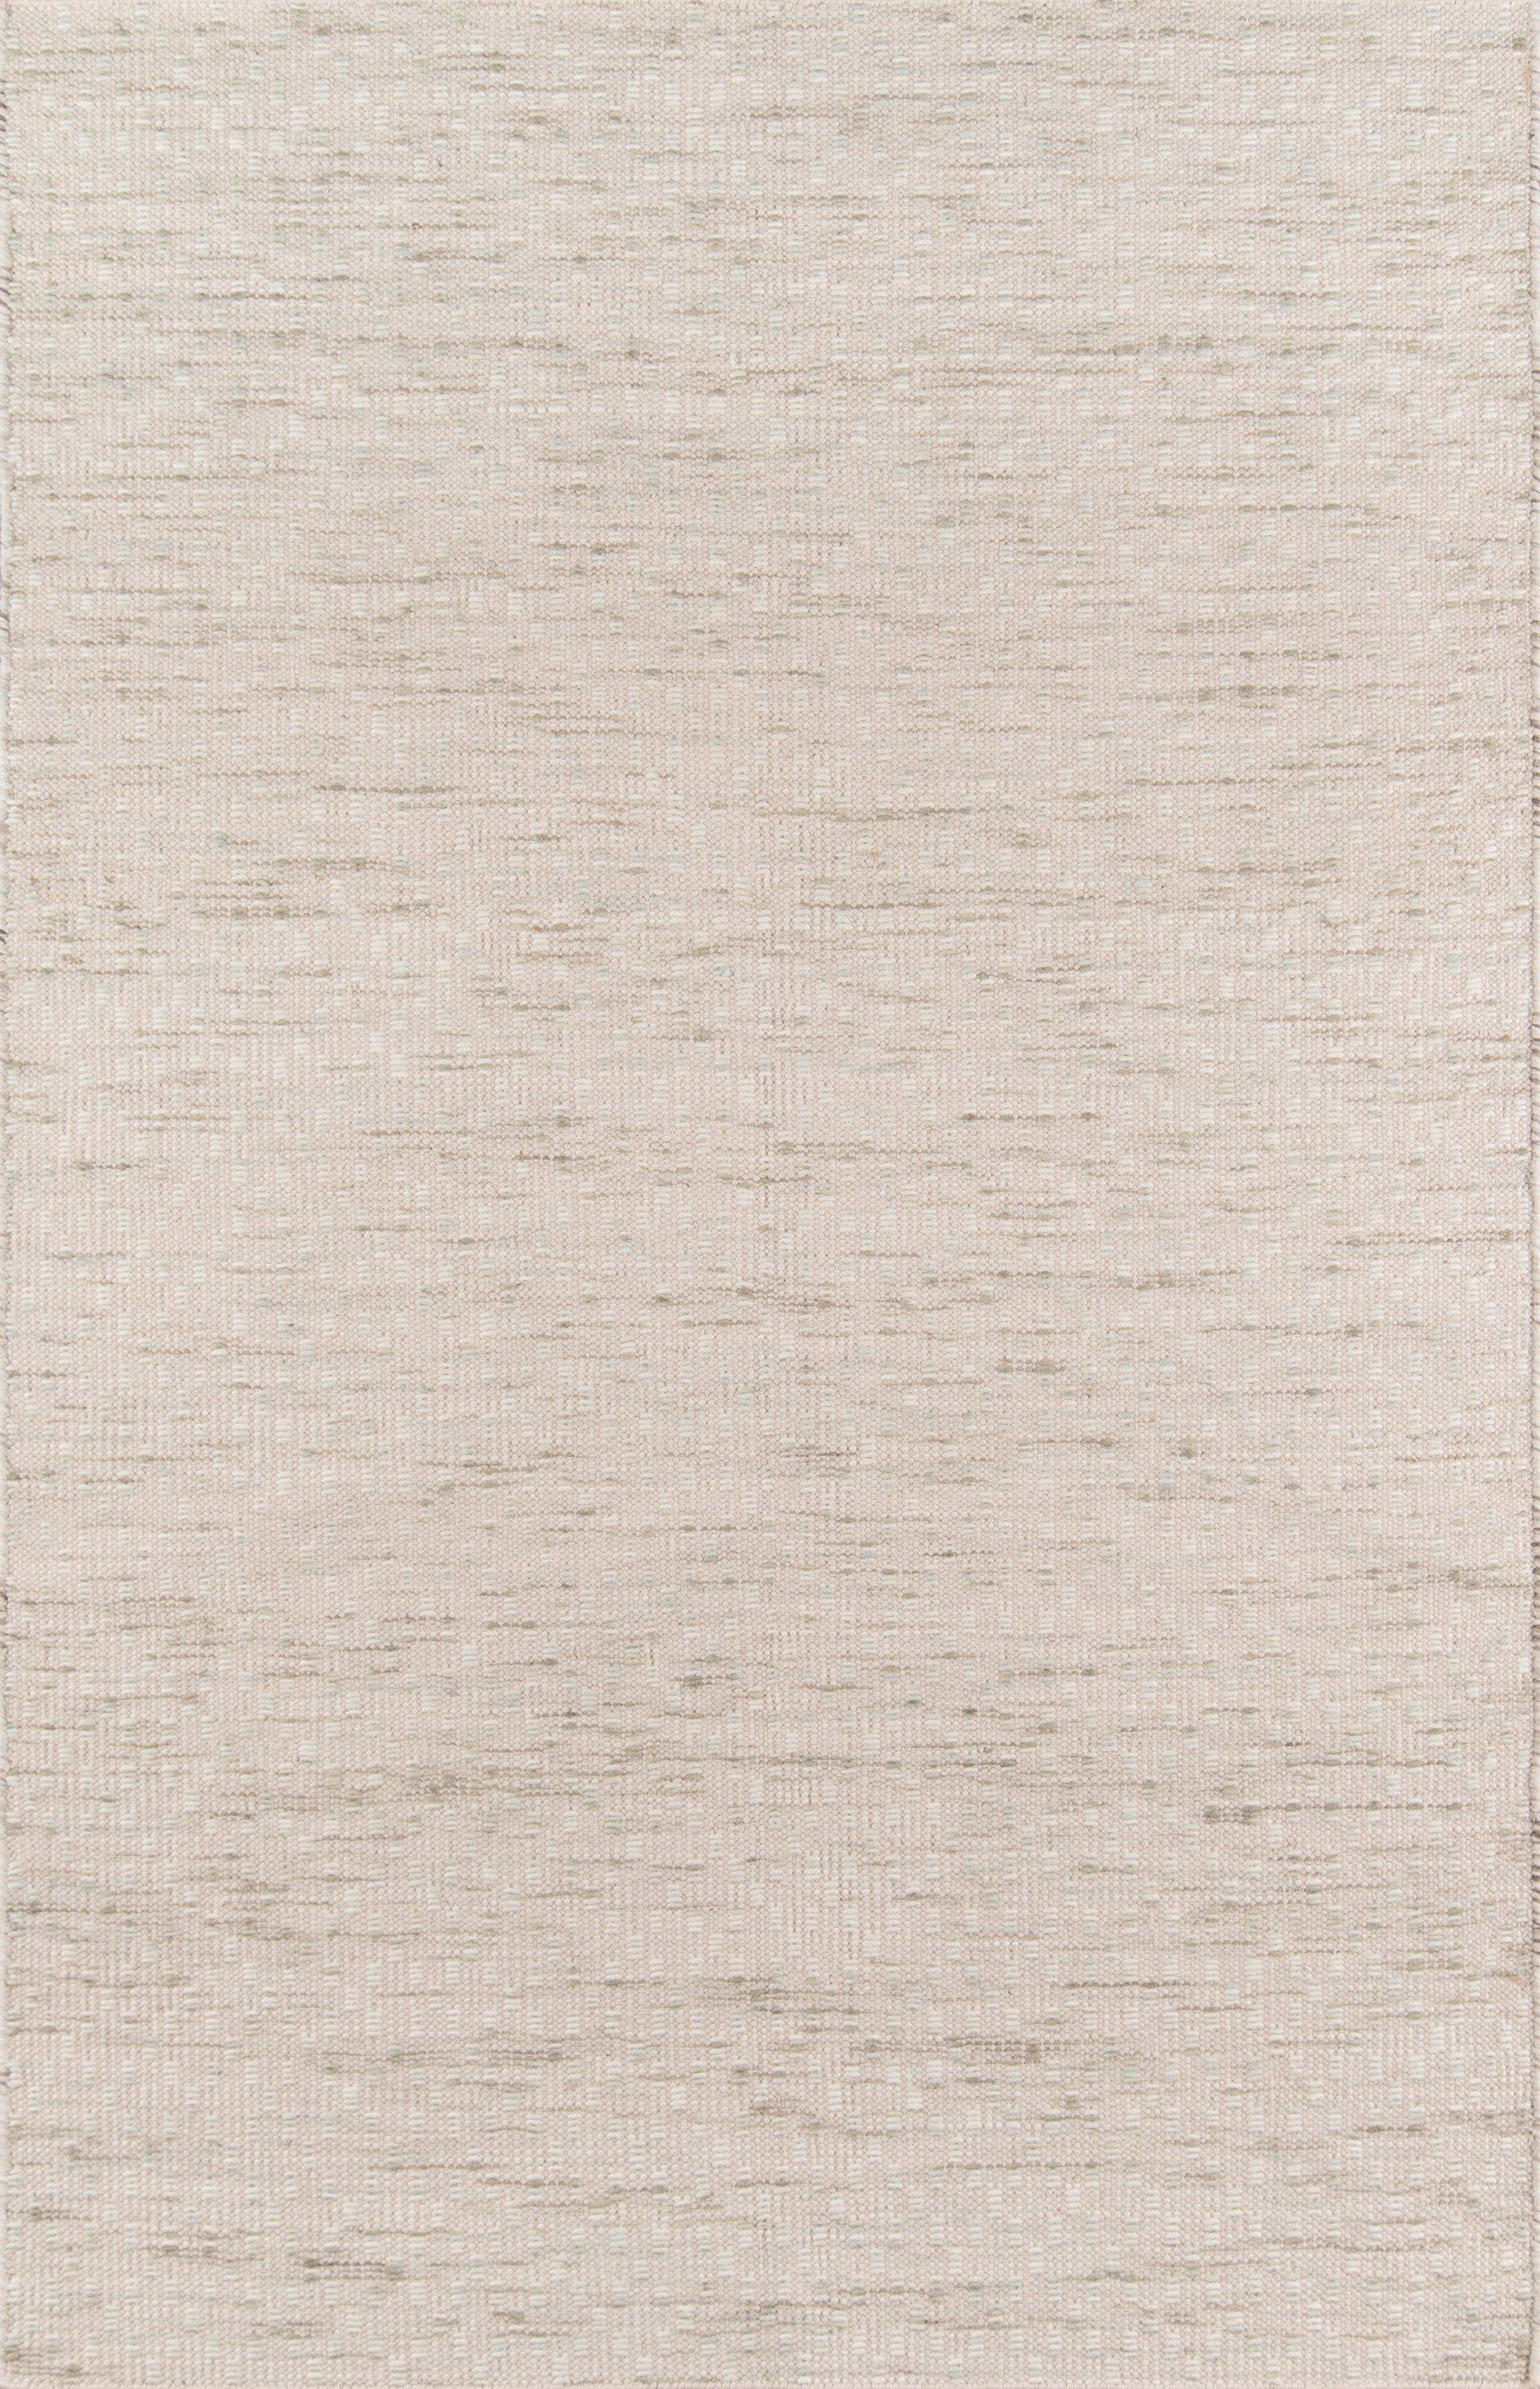 Erin Gates Dartmouth DRT-1 Bartlett Beige Area Rug ( 9' X 12' )